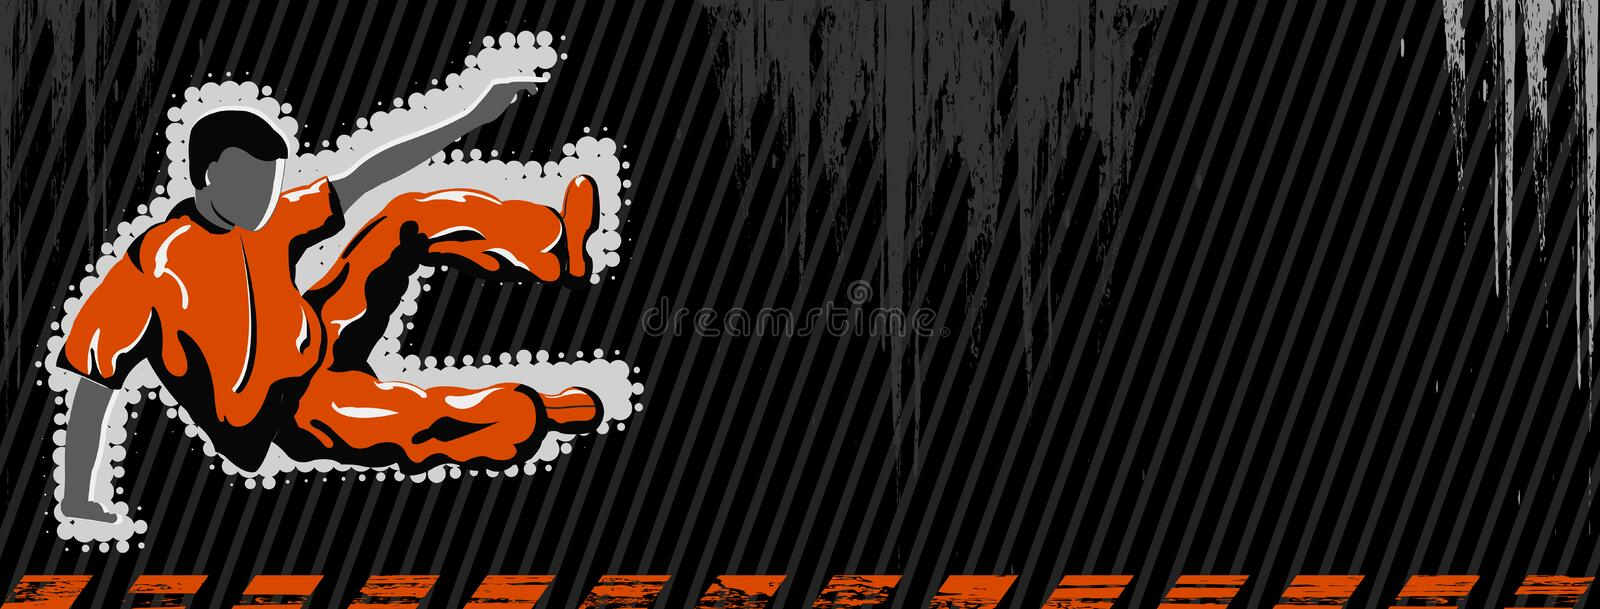 Vector grunge banner with jumping boy royalty free illustration